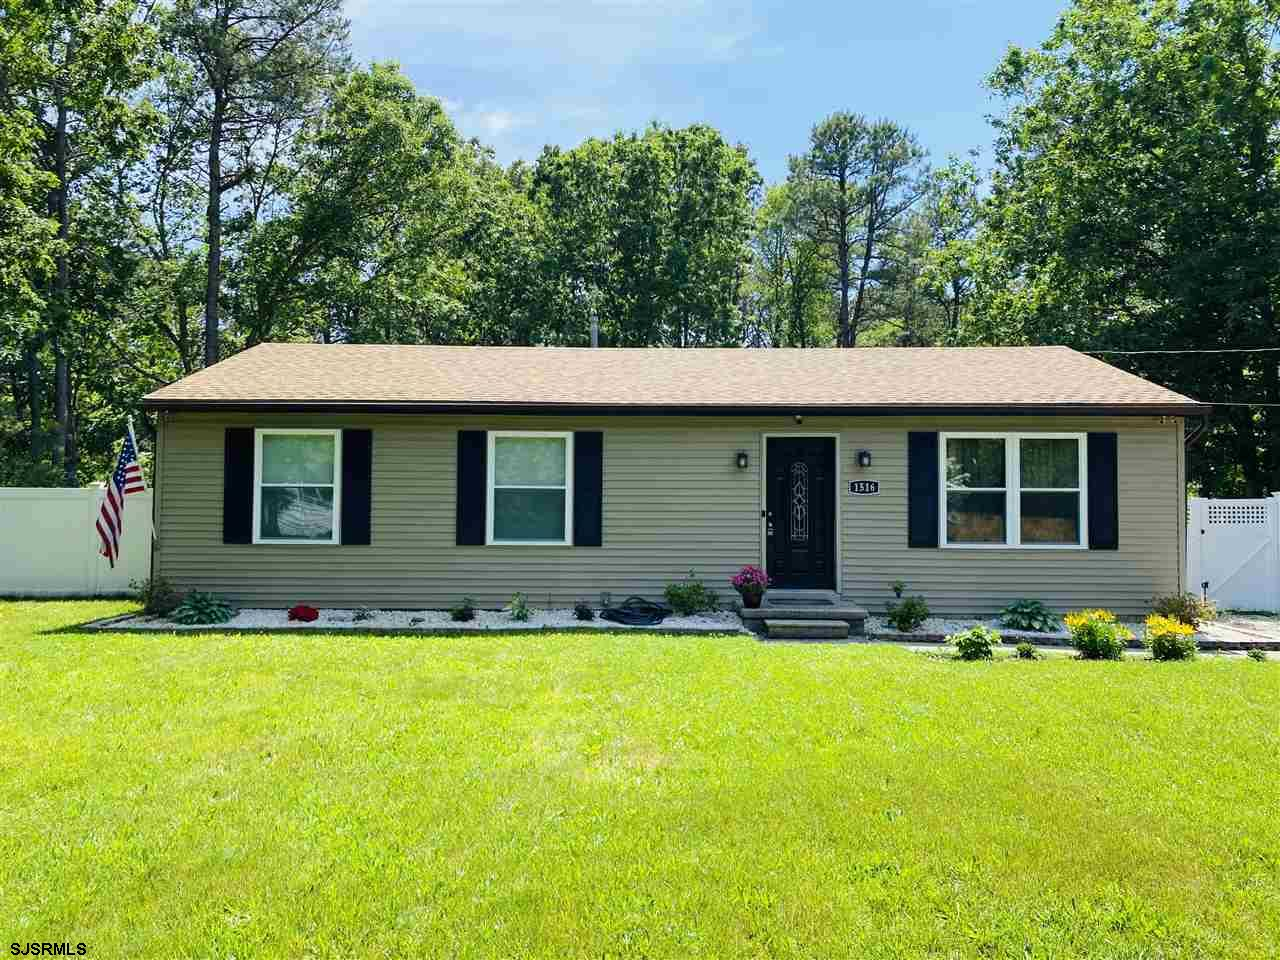 ***GALLOWAY NEW LISTING ALERT***3 BED 1 BATH ON DEAD END ROAD WITH CUL-DE-SAC***NEWER ROOF/HVAC/WIND